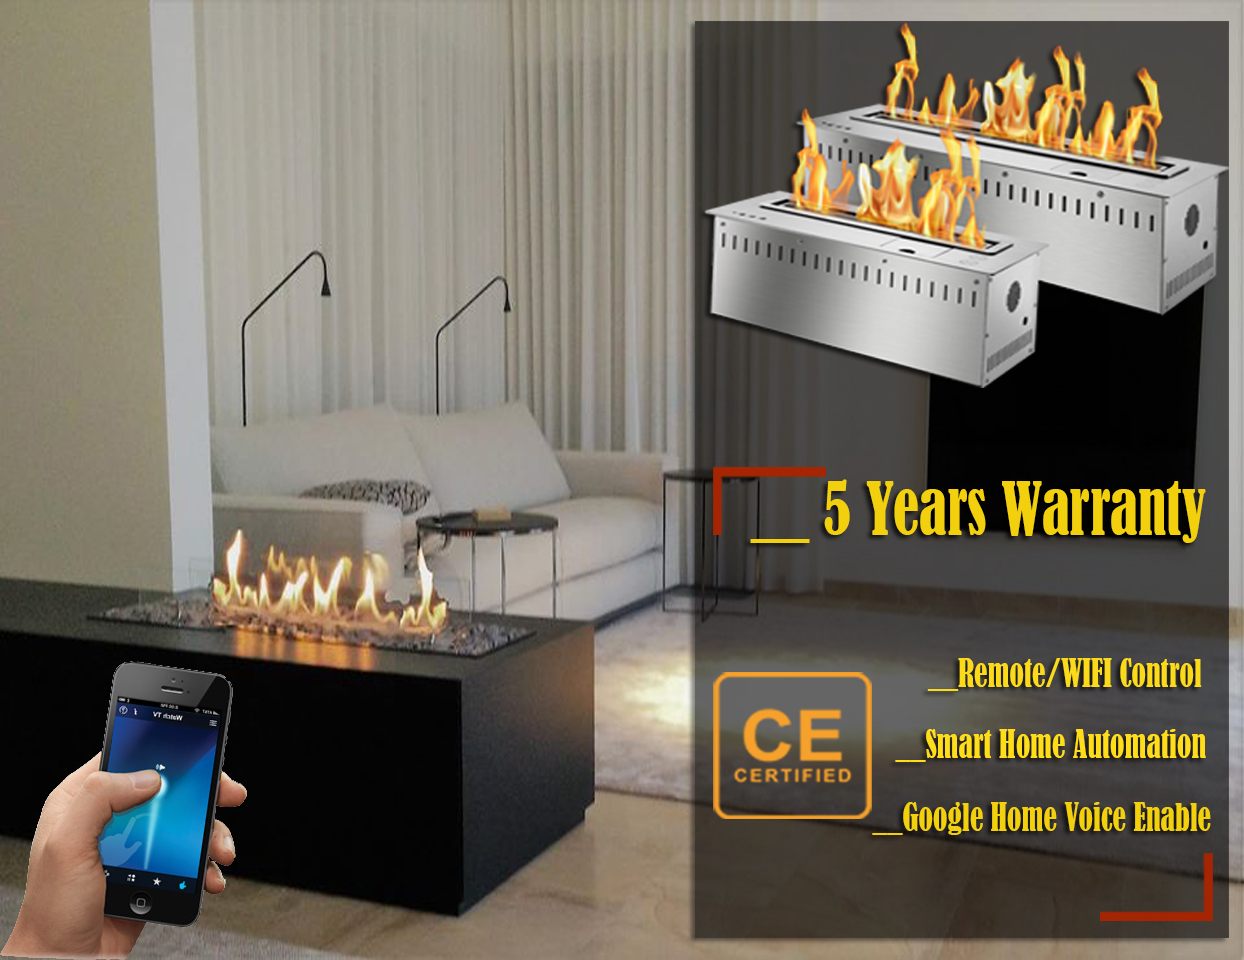 Hot Sale 72 Inches Ethanol Fire Ventless Fireplace Insert With Remote Control